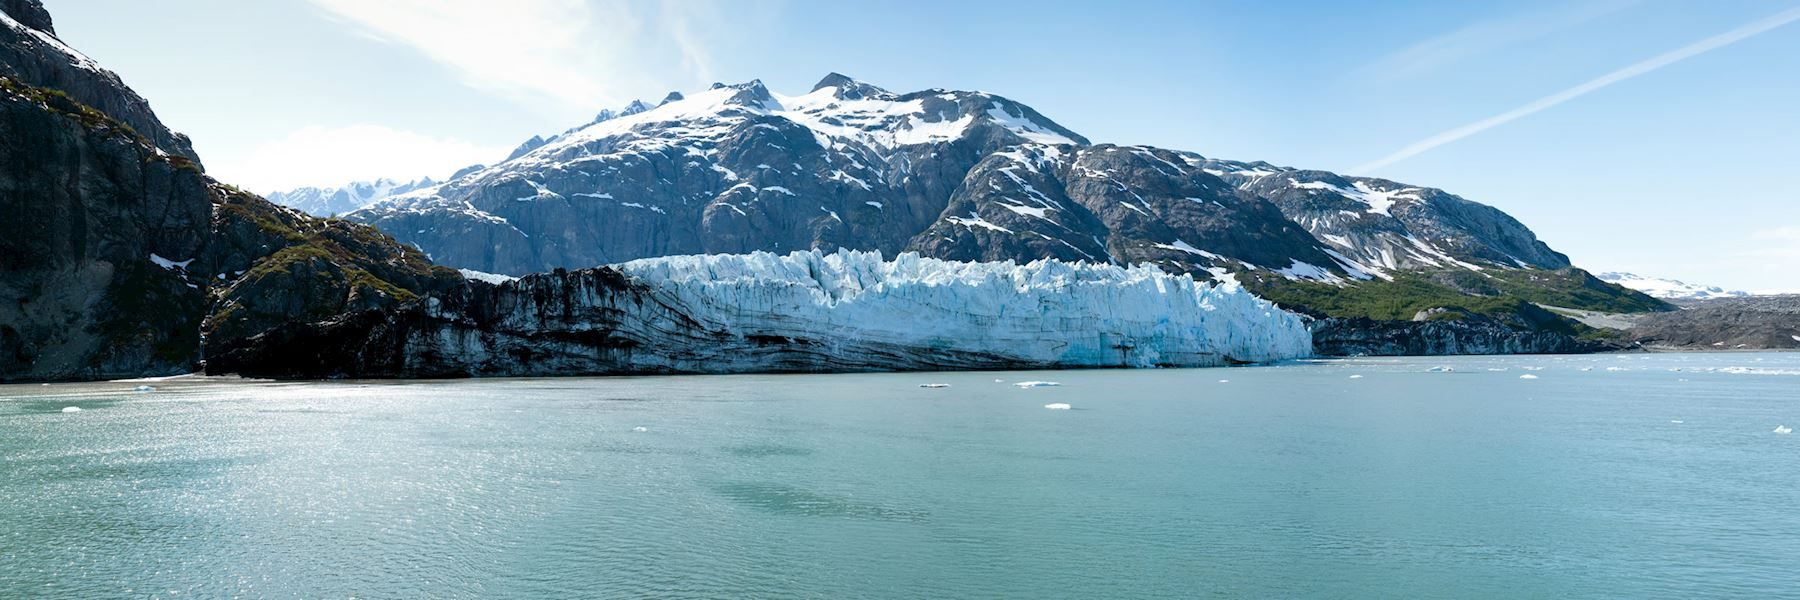 Visit Glacier Bay National Park, Alaska